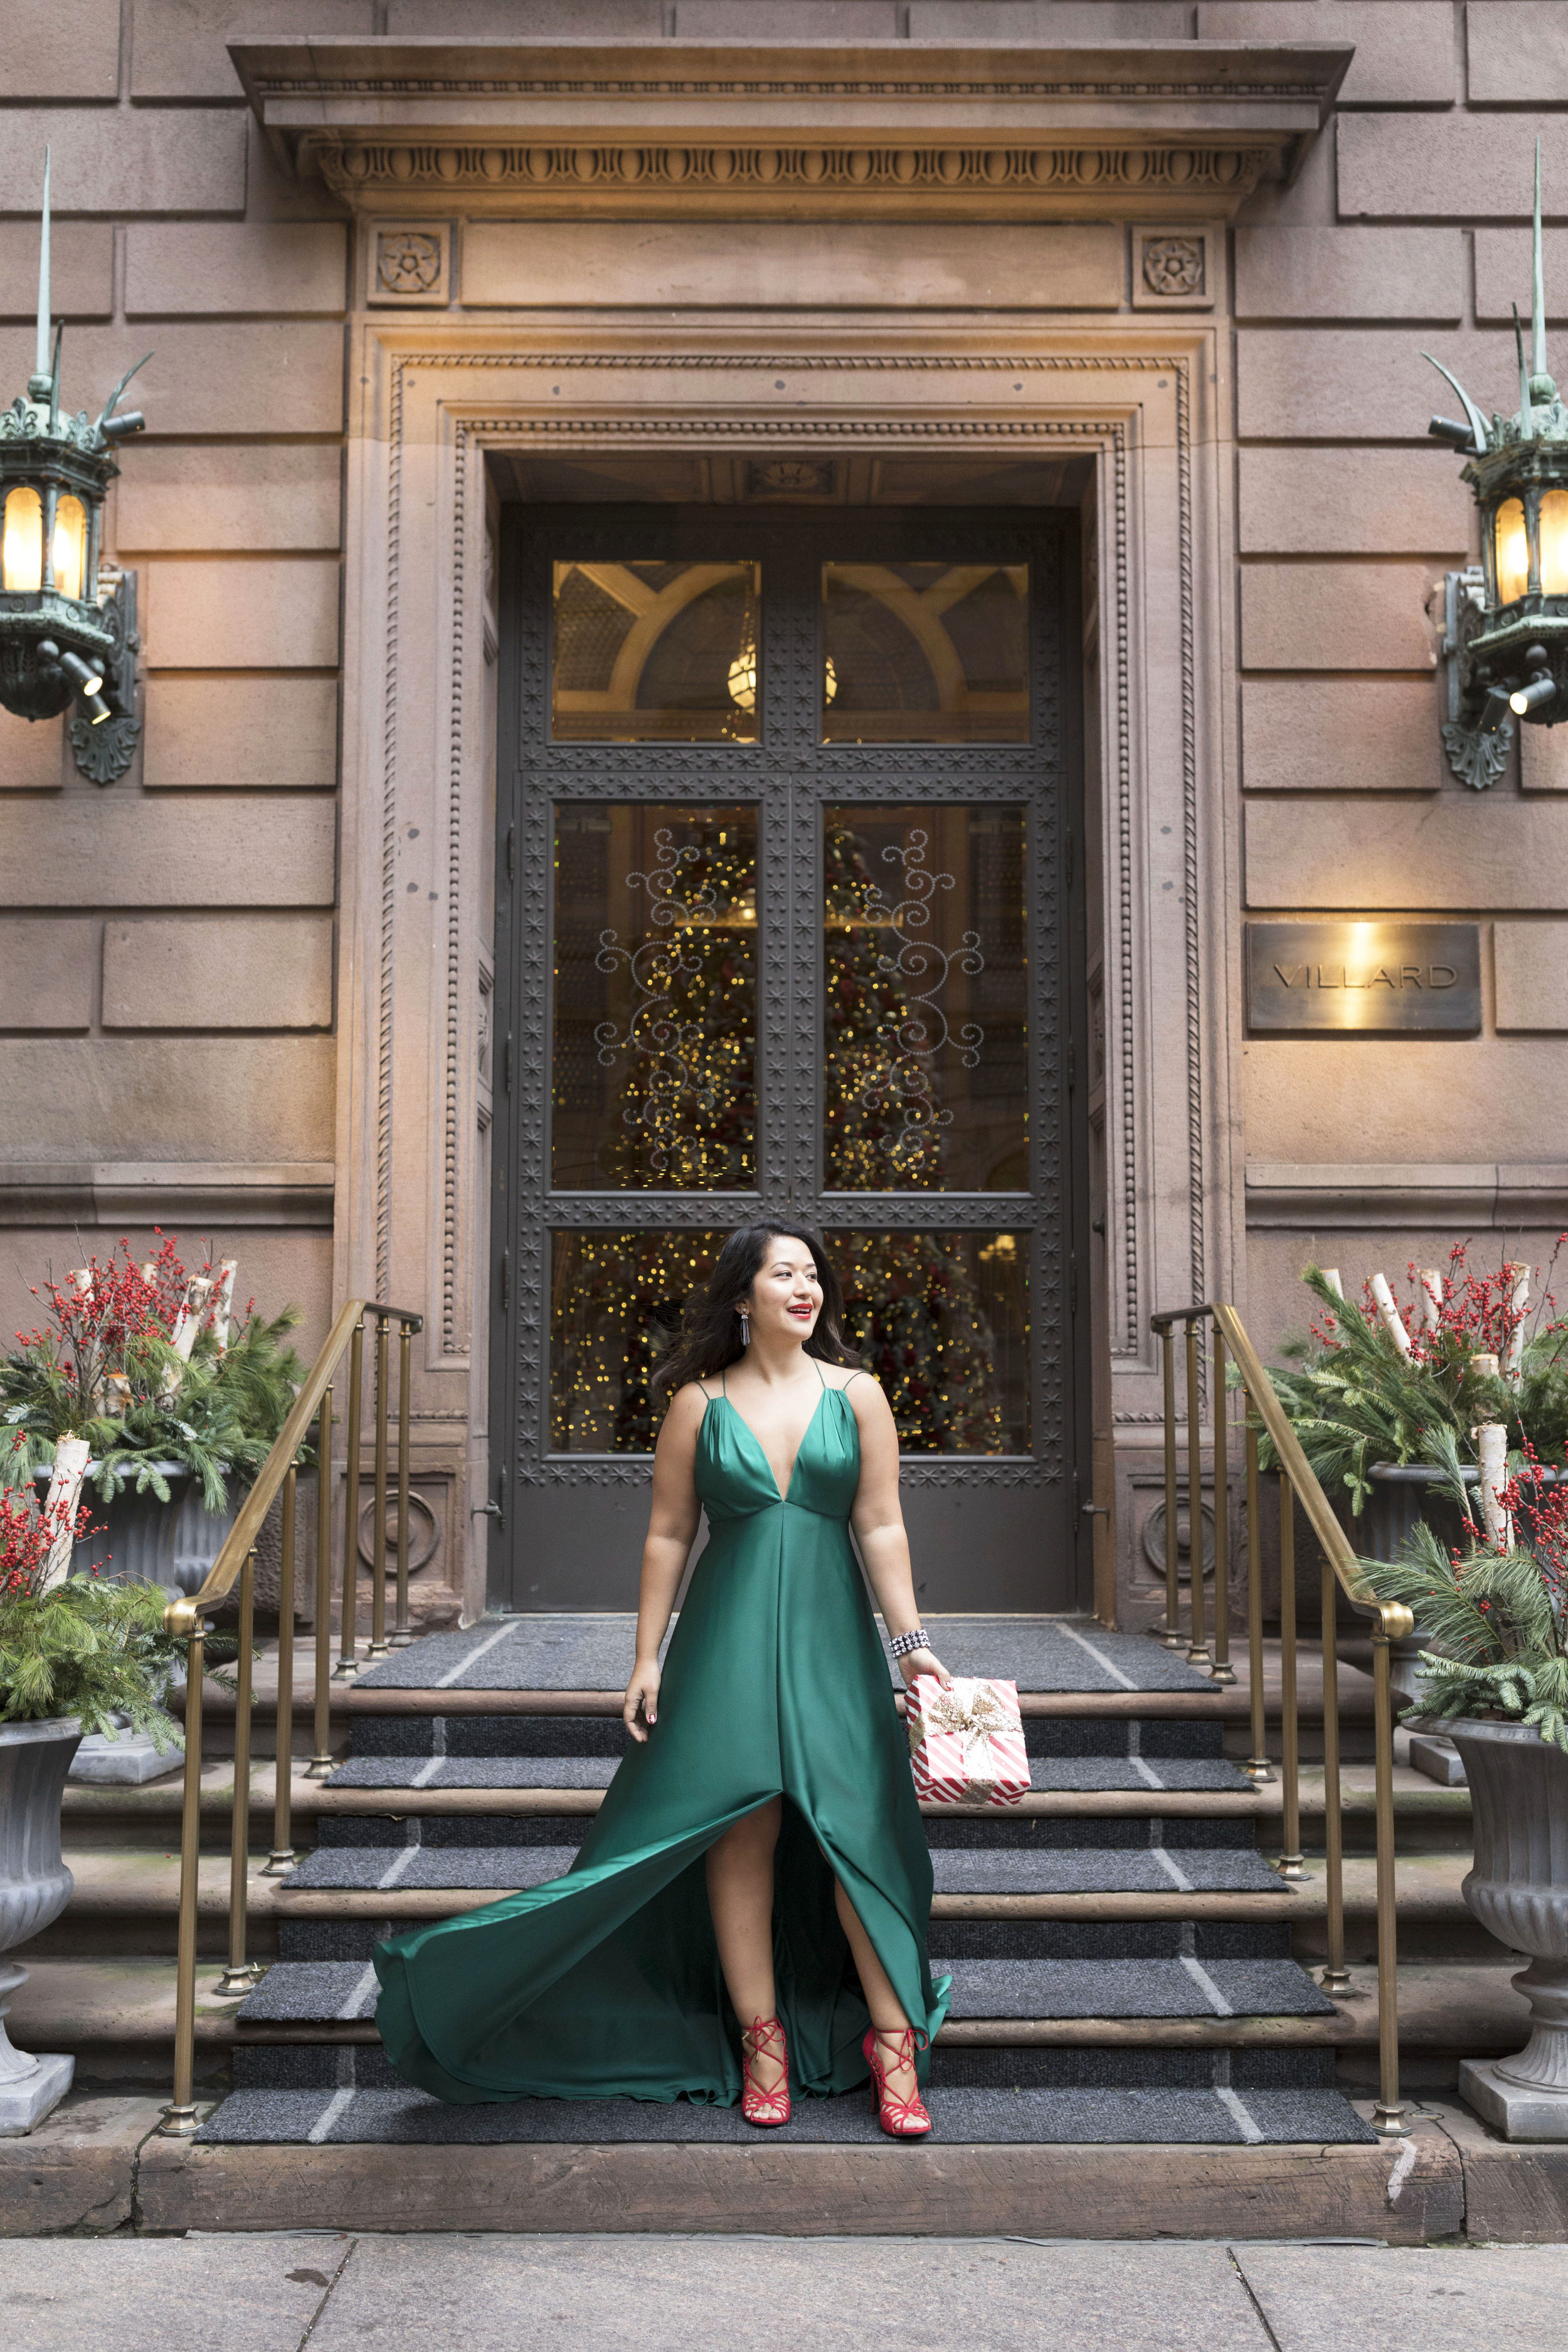 Krity S x Holiday Outfit x Forest Silk Aidan Mattox Gown 1.jpg